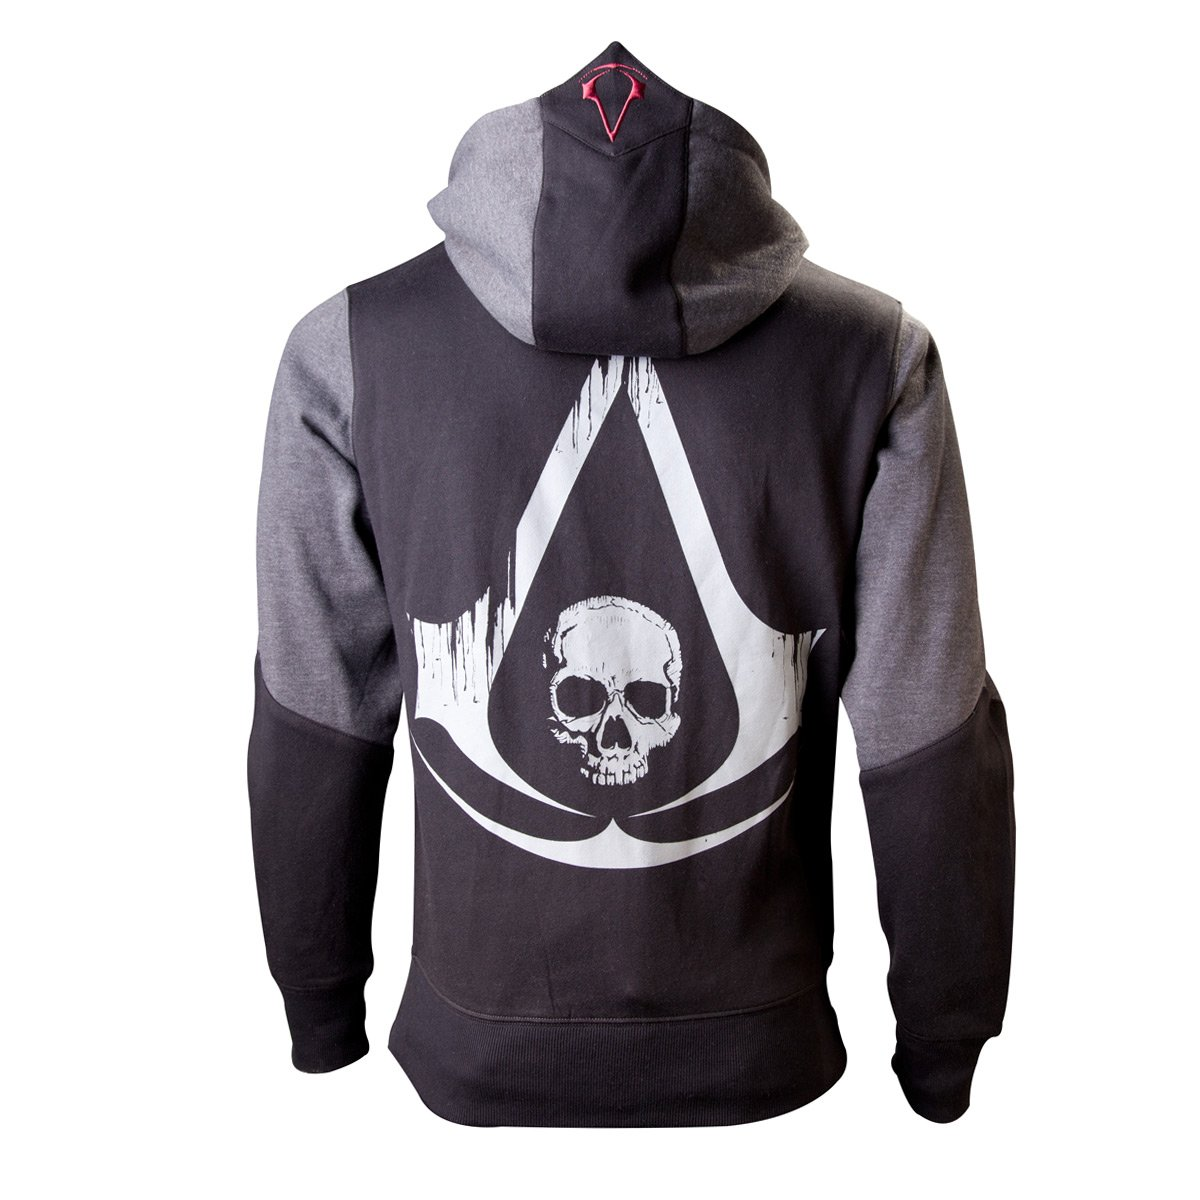 Import Europe, Sudadera Assassin's Creed